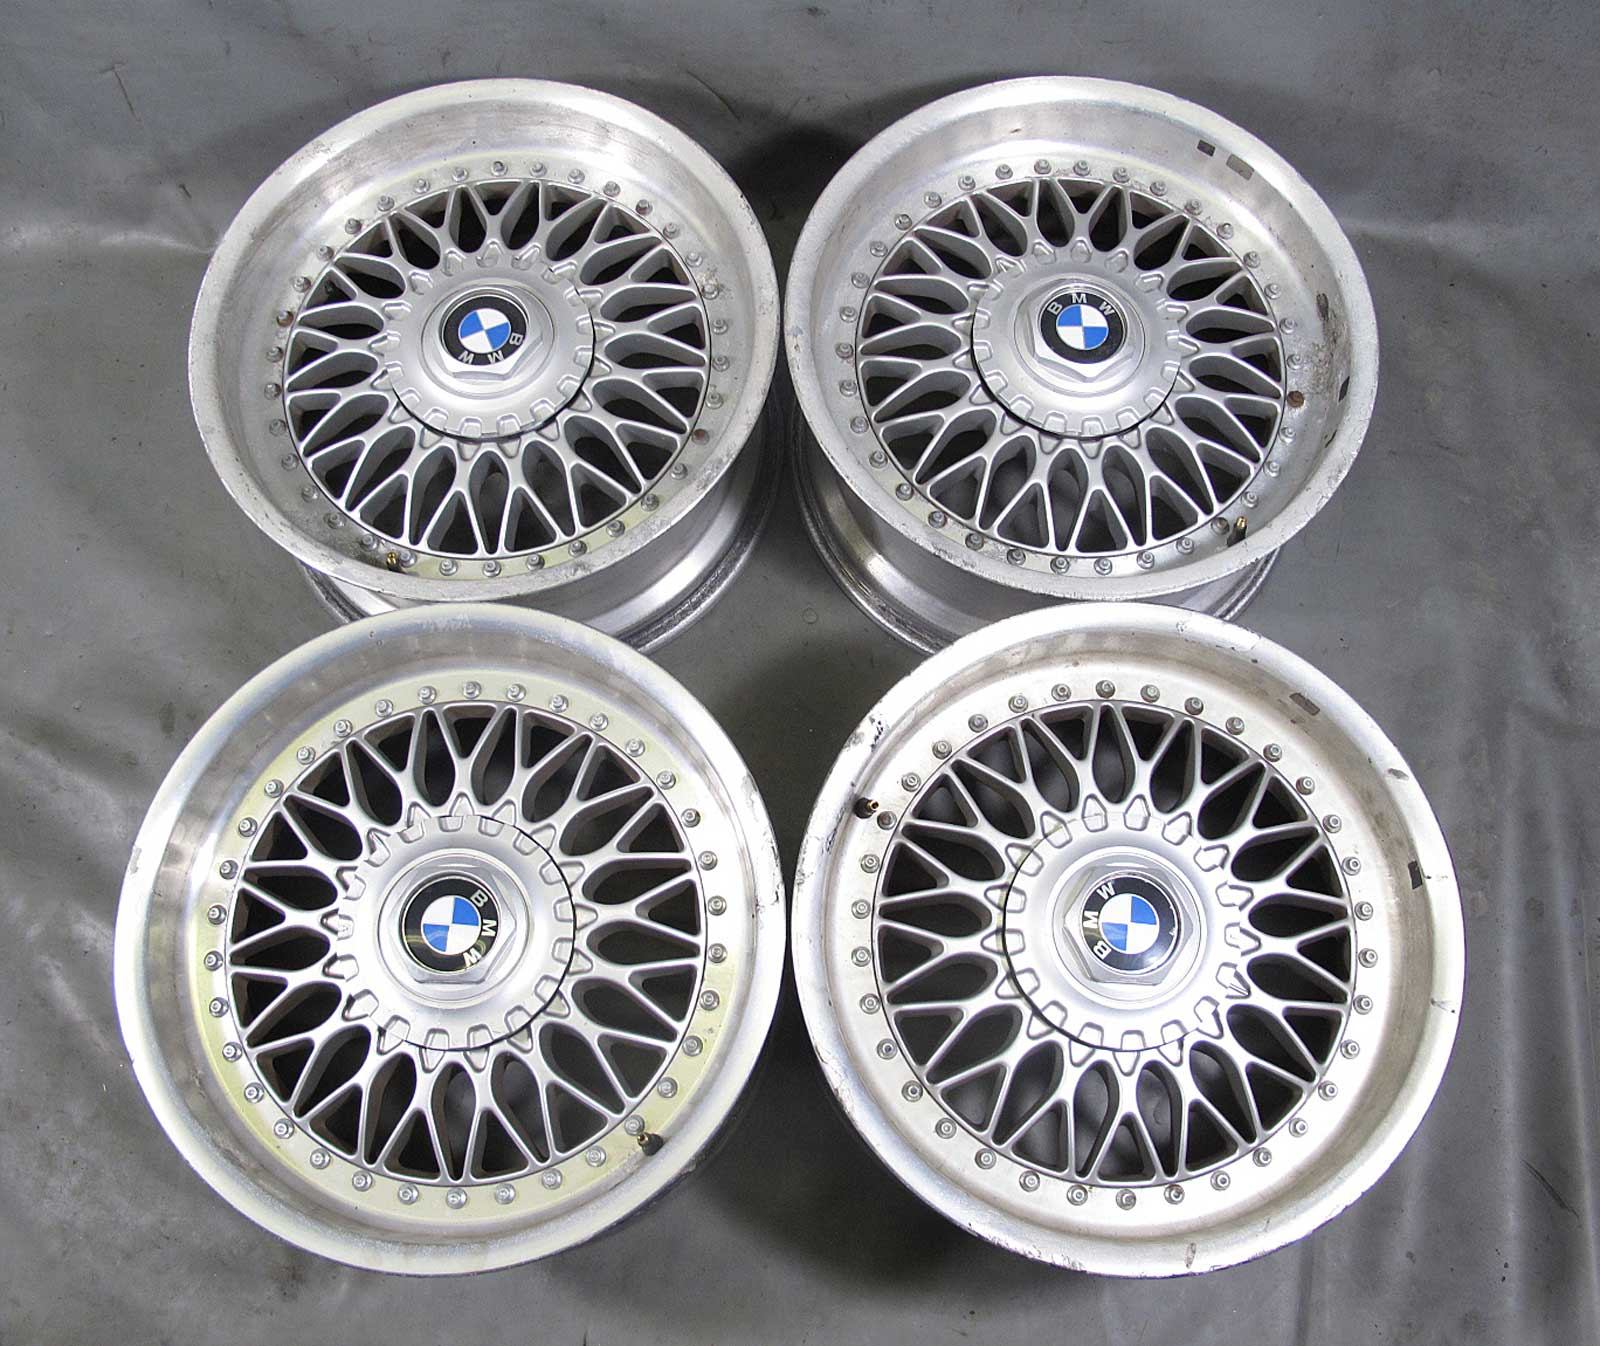 racing org b ruff home black d for wheels lugs gregg undercut bmw sale satin lay red